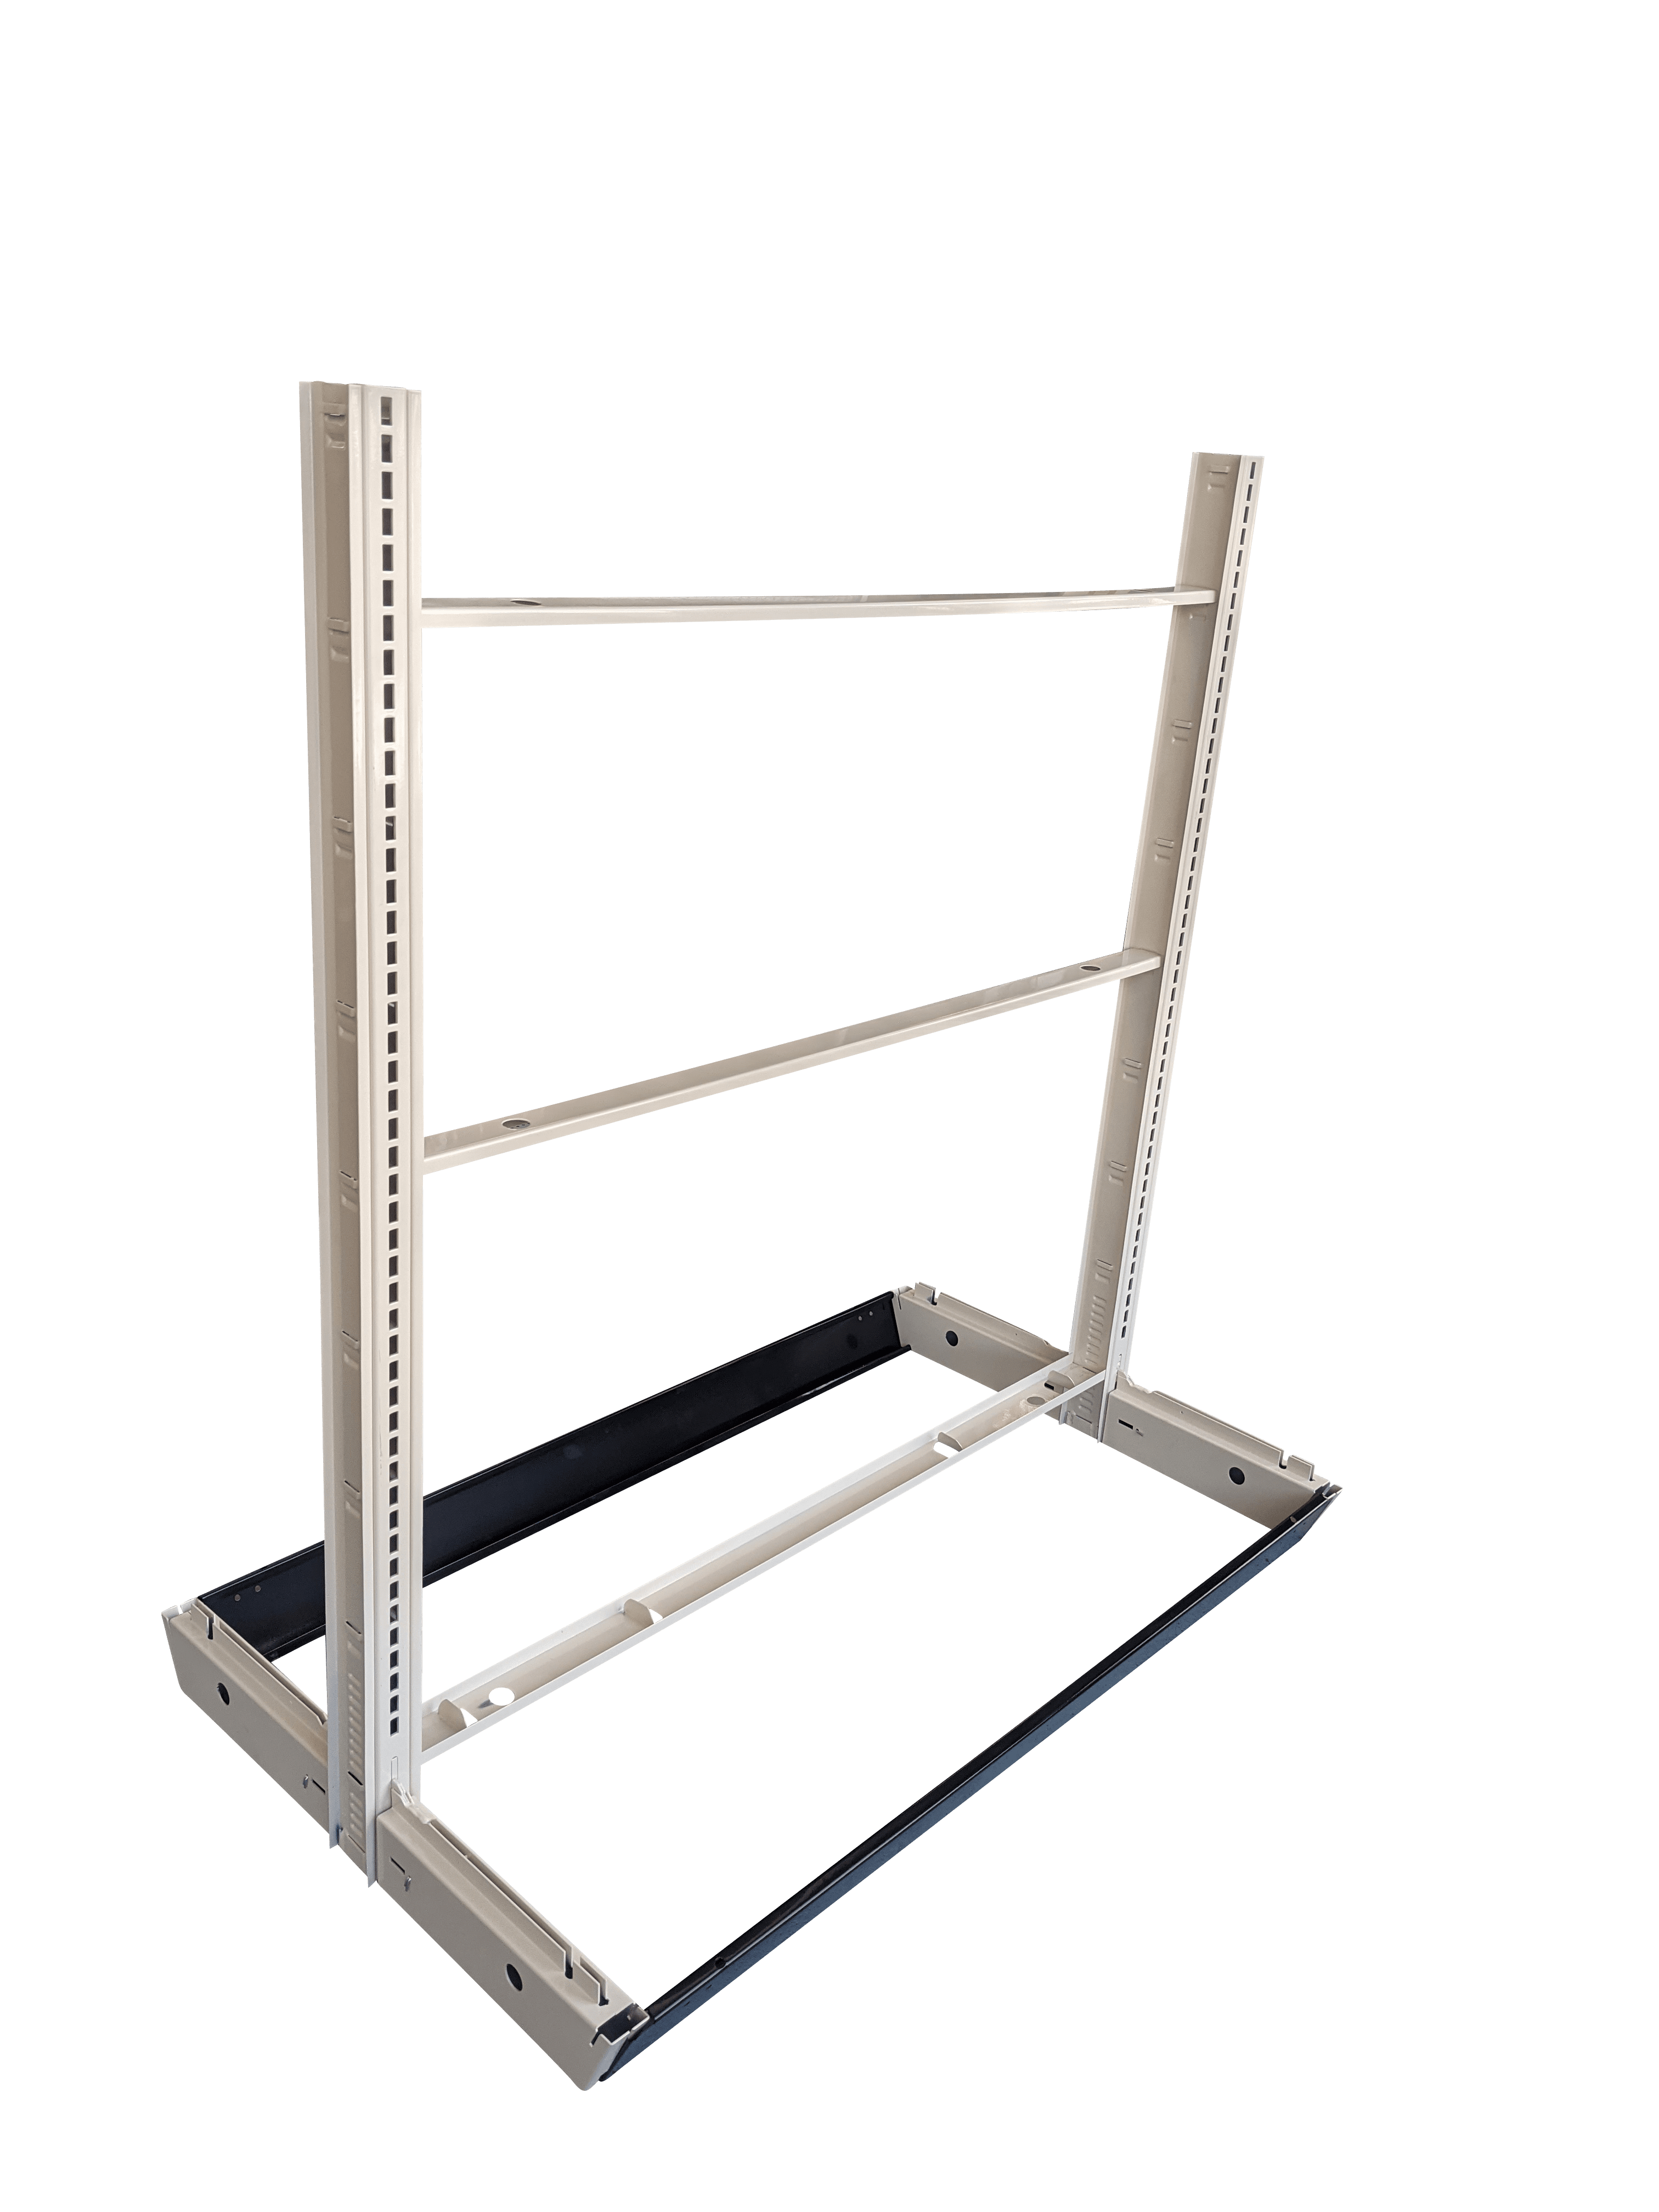 Display Assembly Instructions